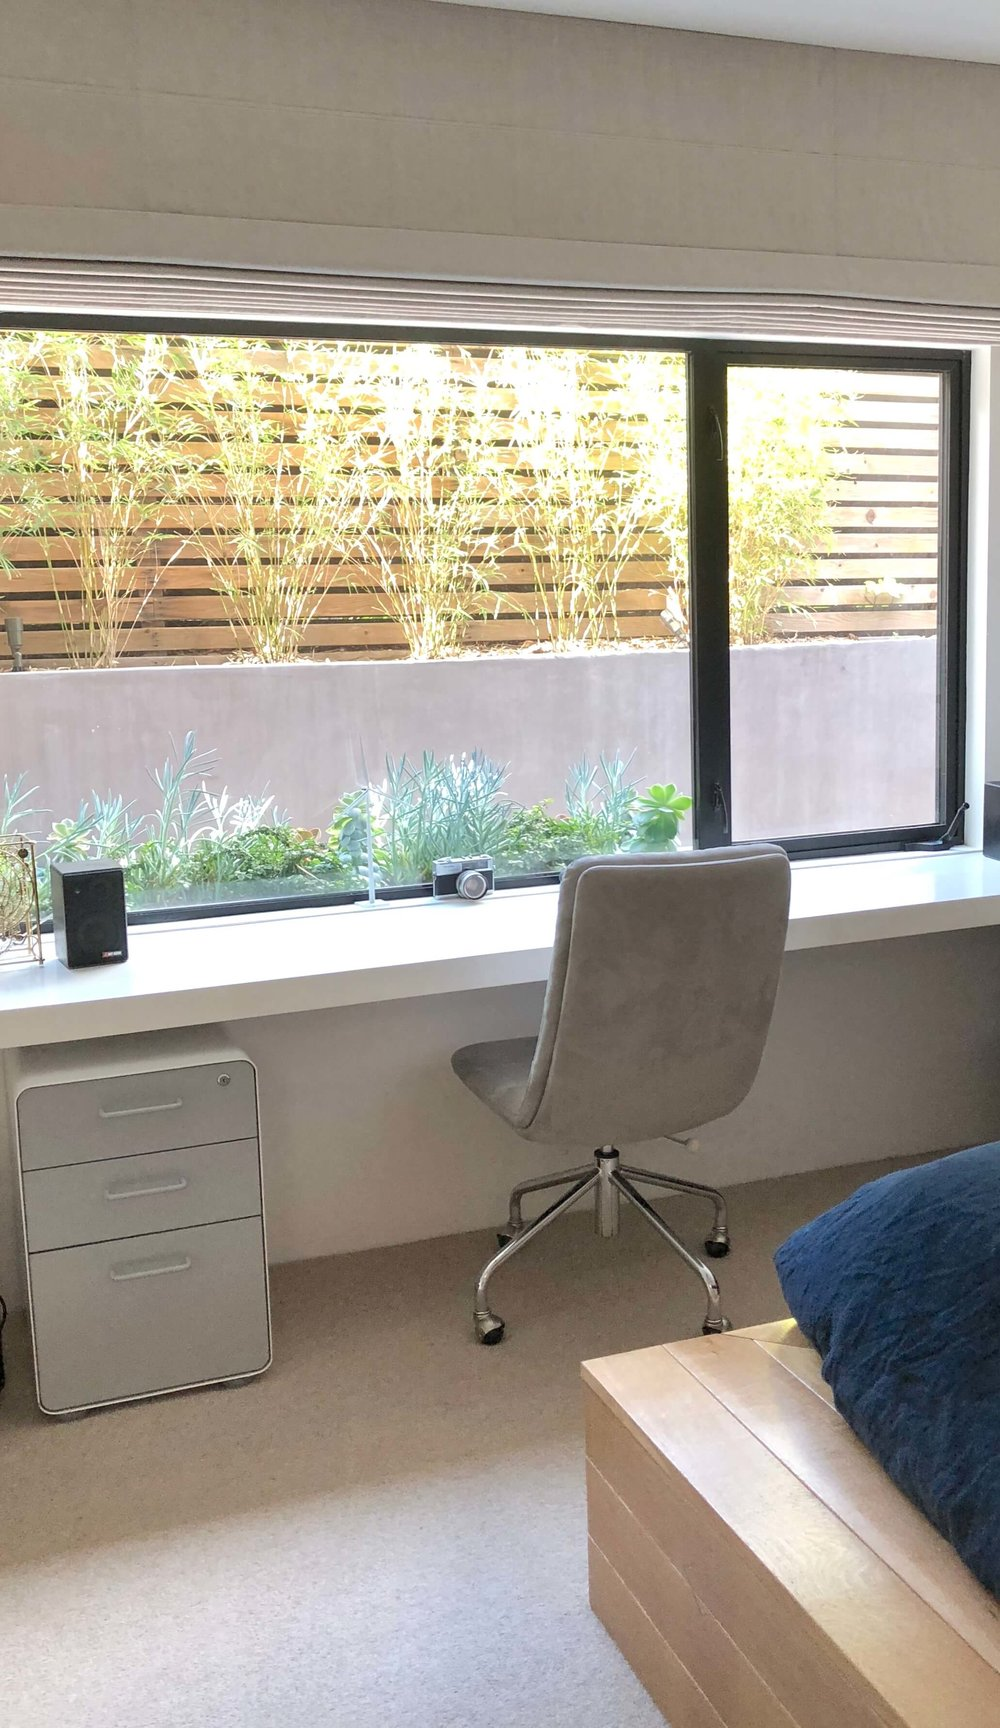 Built in desk at window | Assembledge+ Architects, Dwell on Design, Los Angeles, California #builtindesk #deskatwindow #studynook